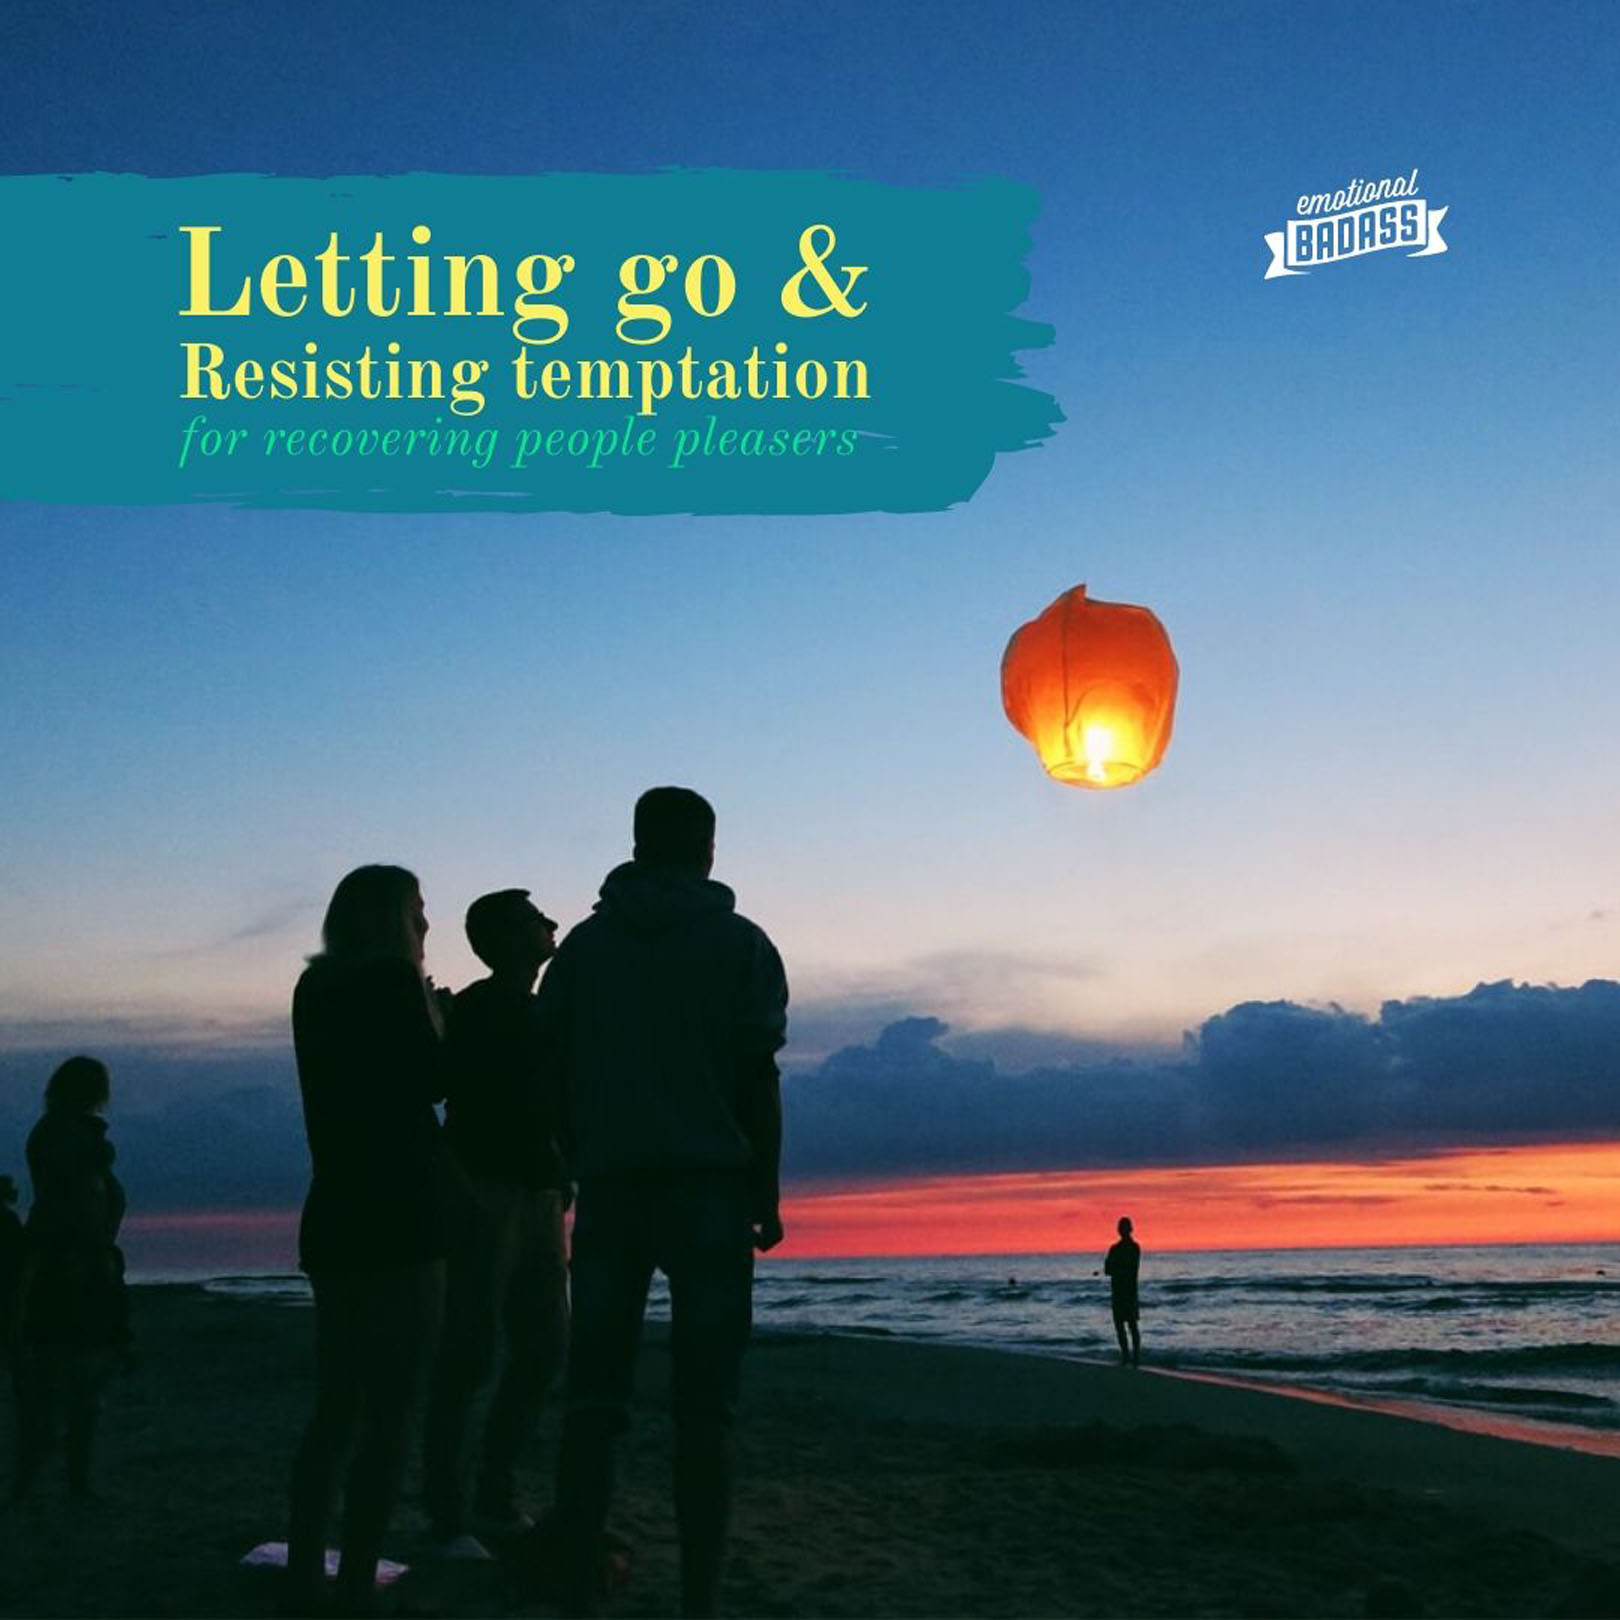 Letting go and resisting temptation for recovering people pleasers